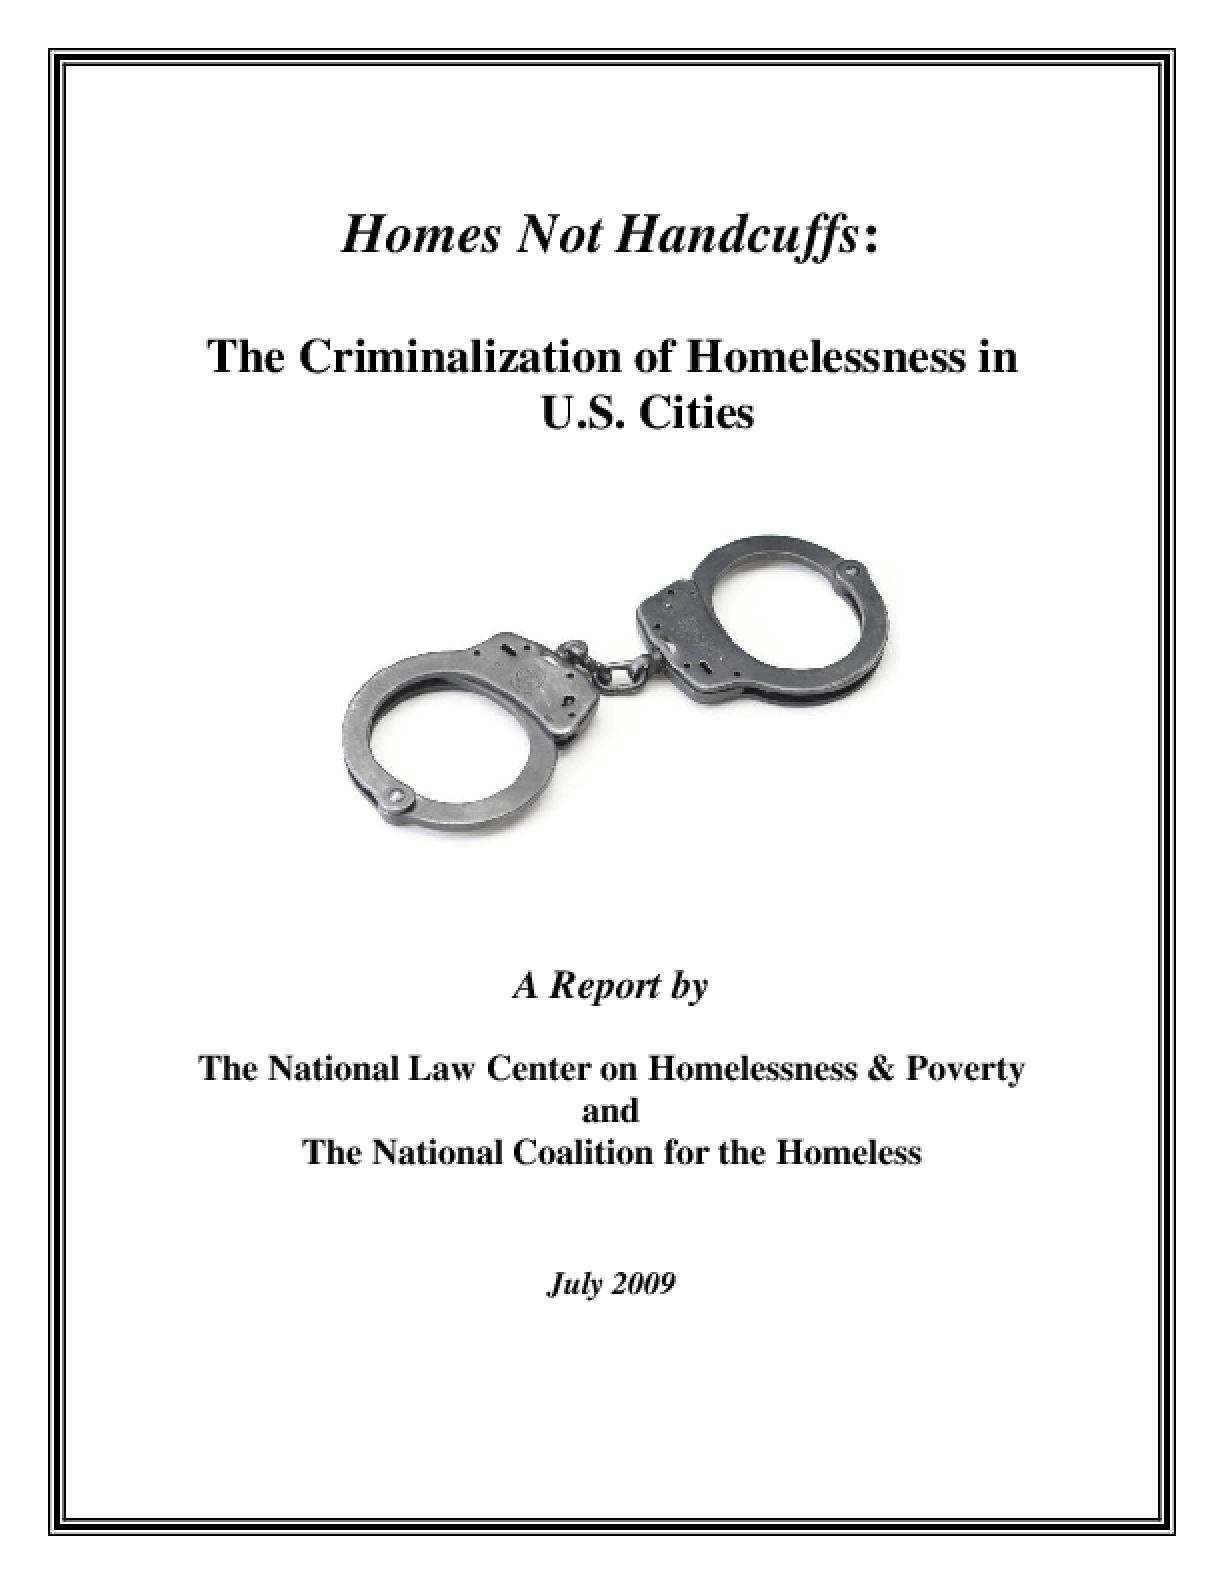 Homes, Not Handcuffs: The Criminalization of Homelessness in U.S. Cities